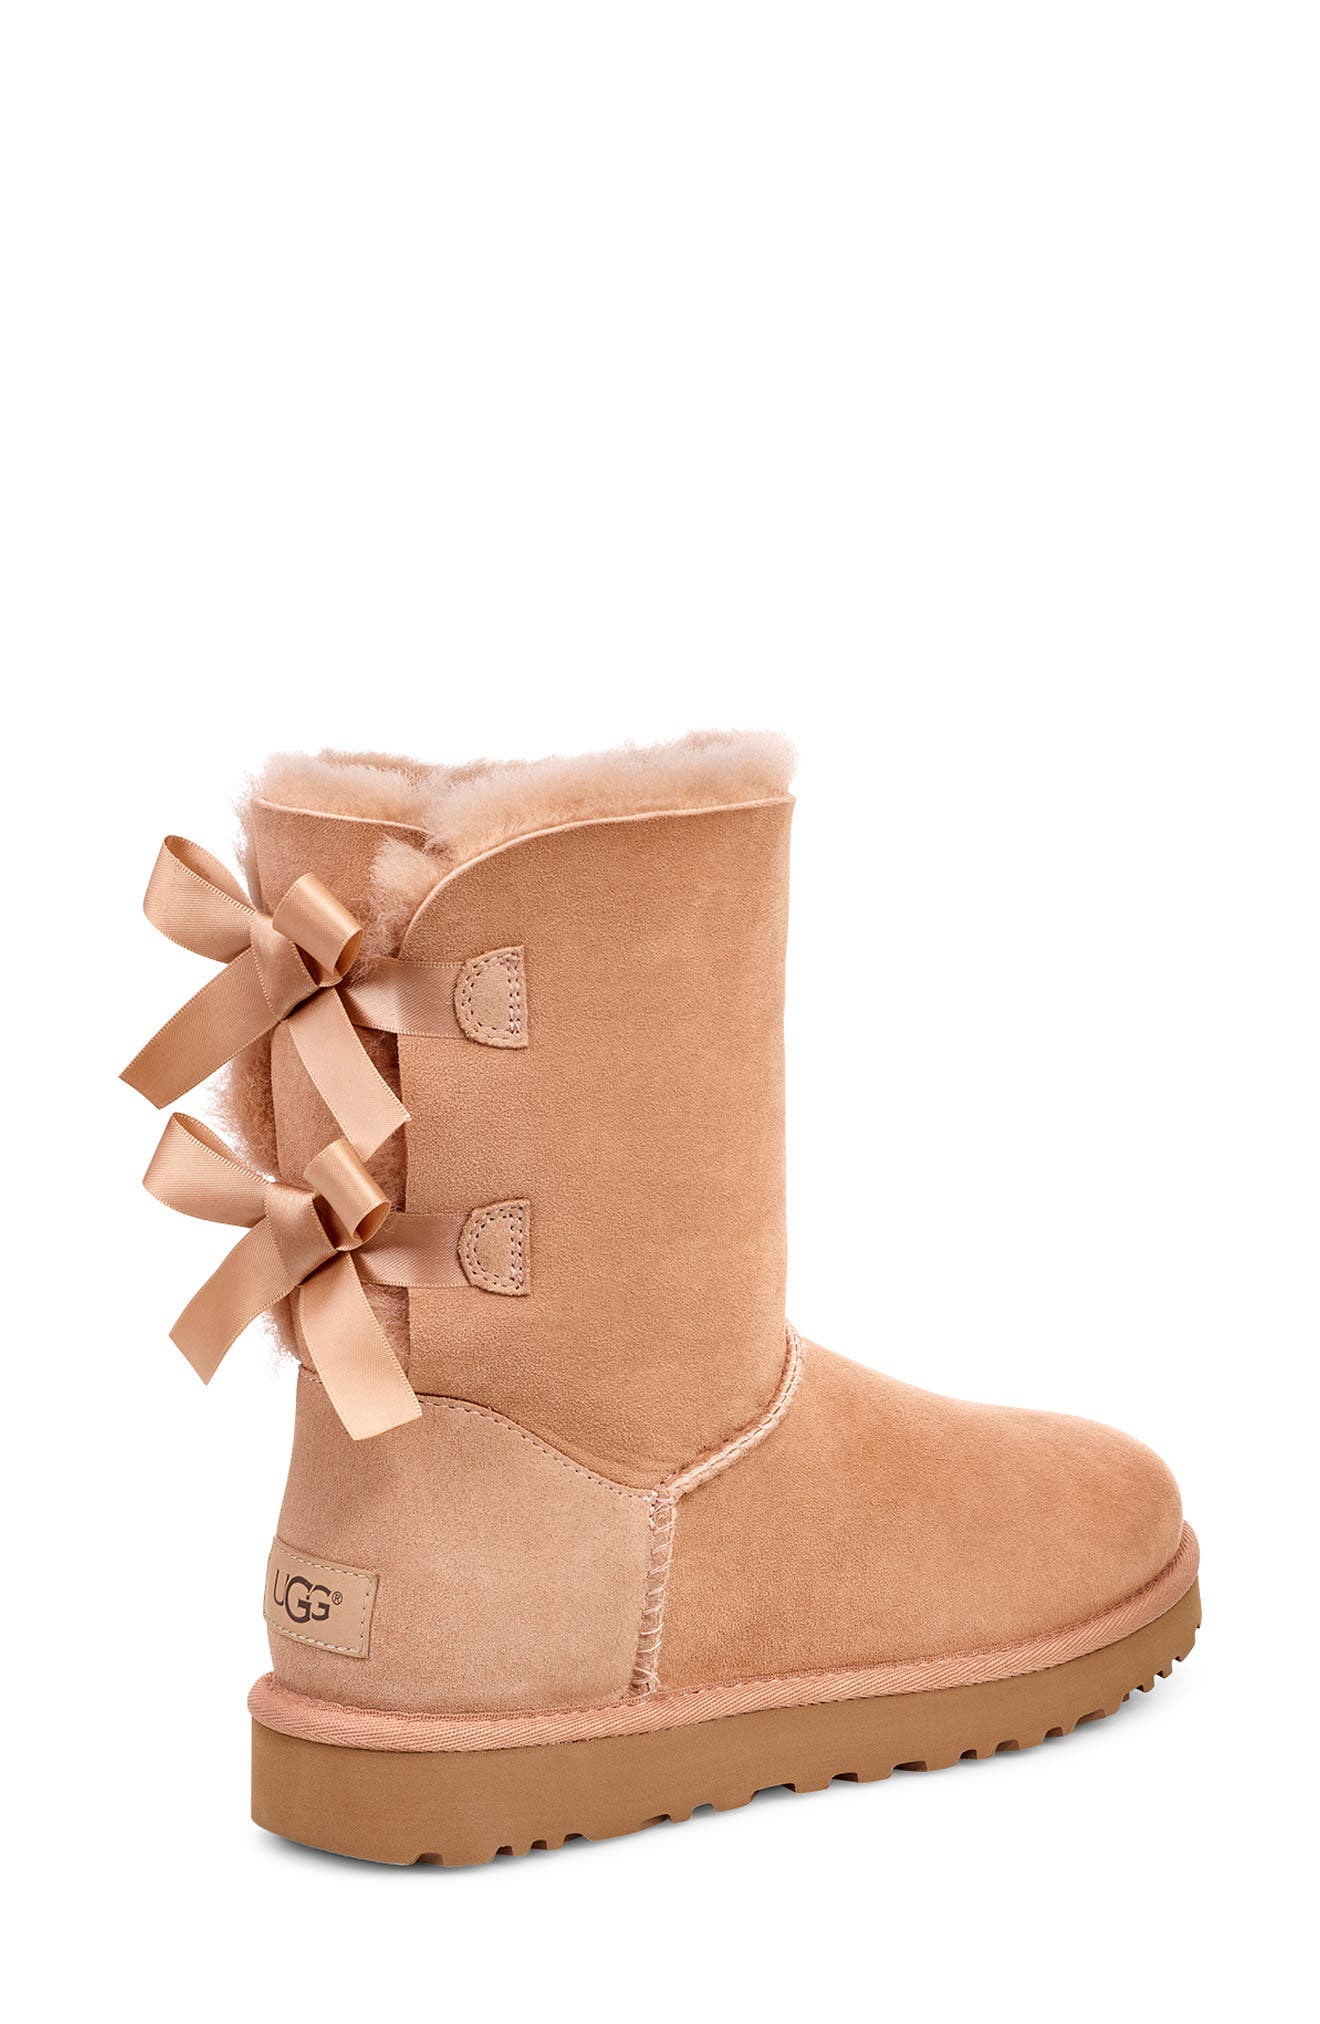 'Bailey Bow II' Boot,                             Alternate thumbnail 2, color,                             ARROYO SUEDE